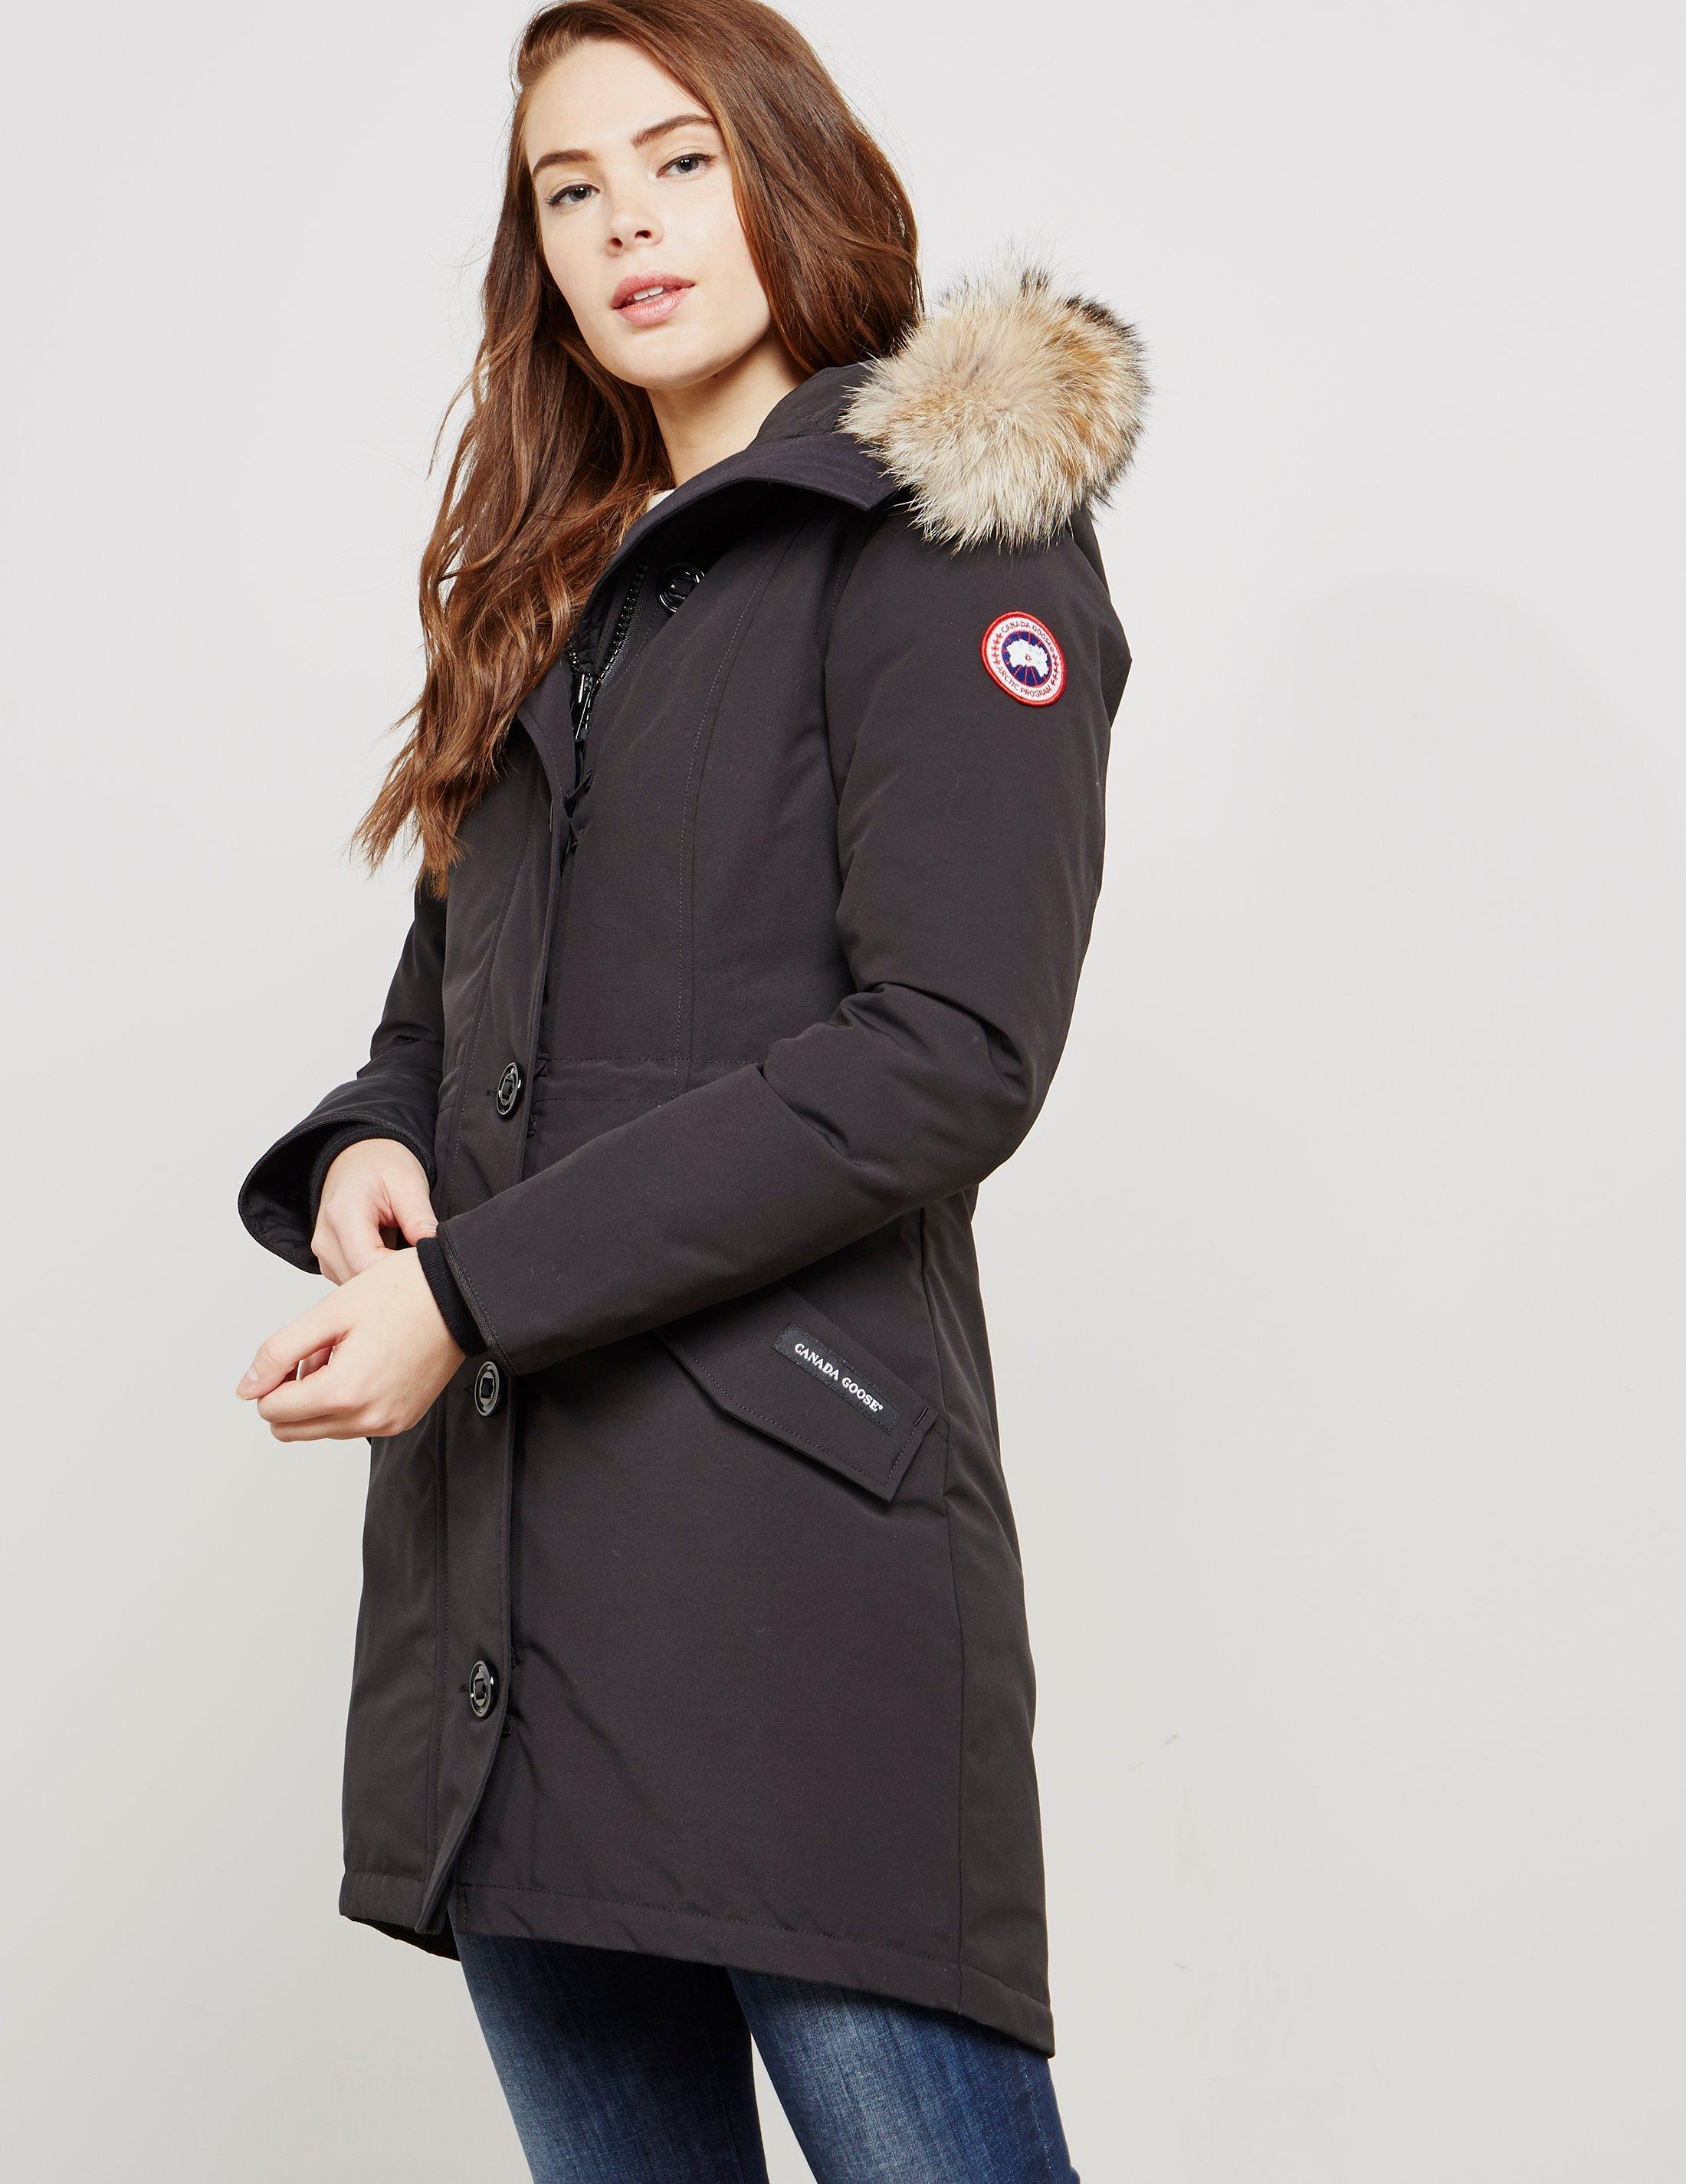 d371ab1e5ce8 Canada Goose - Rossclair Padded Parka Jacket Black - Lyst. View fullscreen